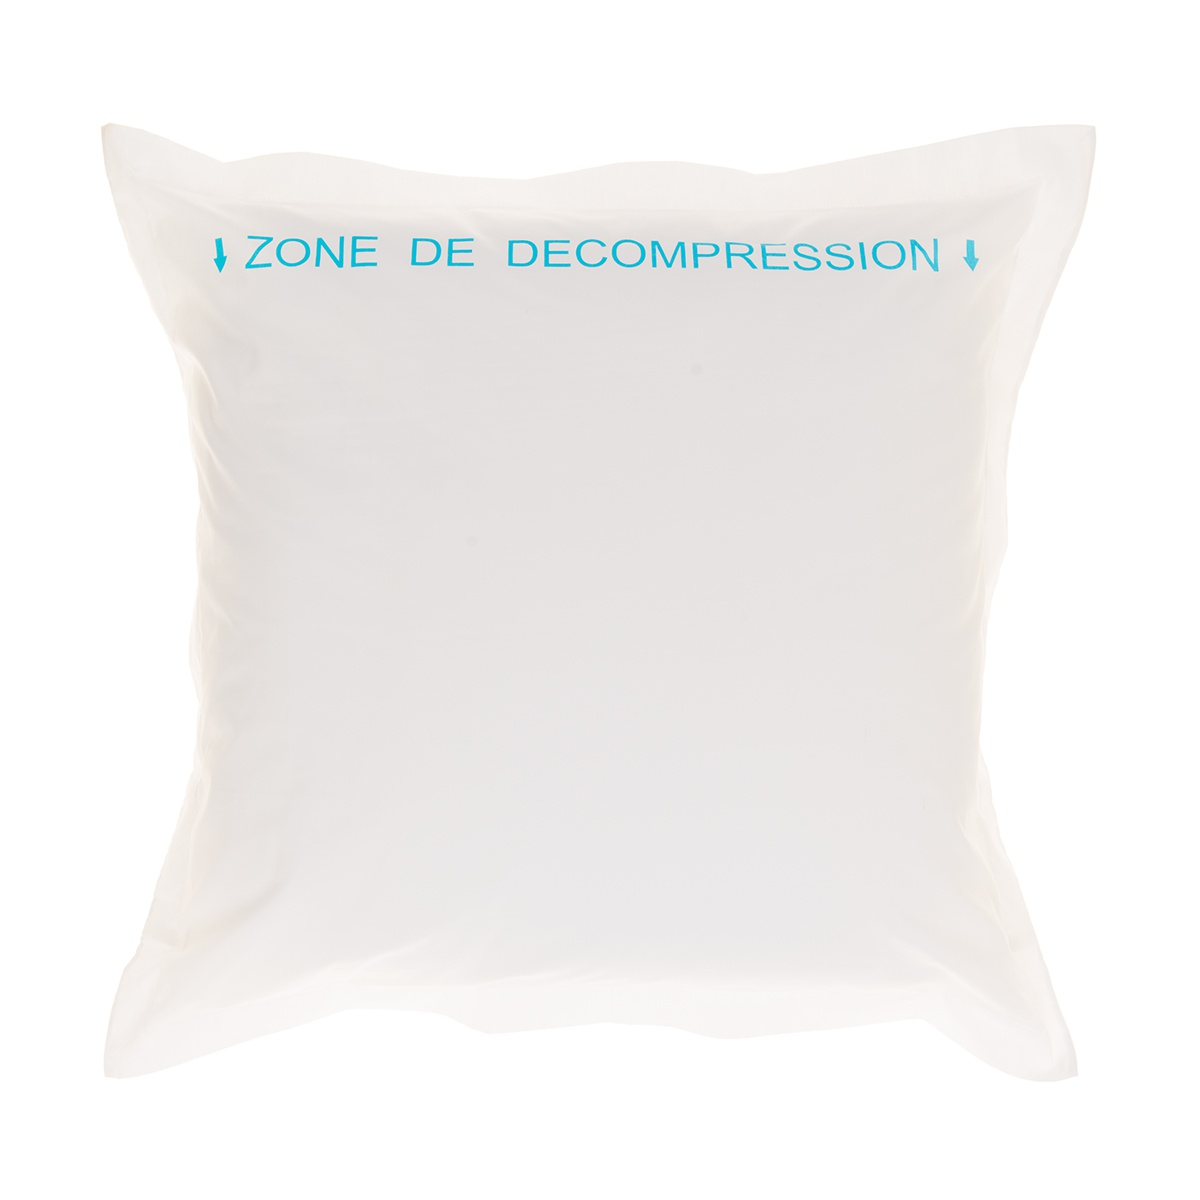 zone de decompression - oreiller